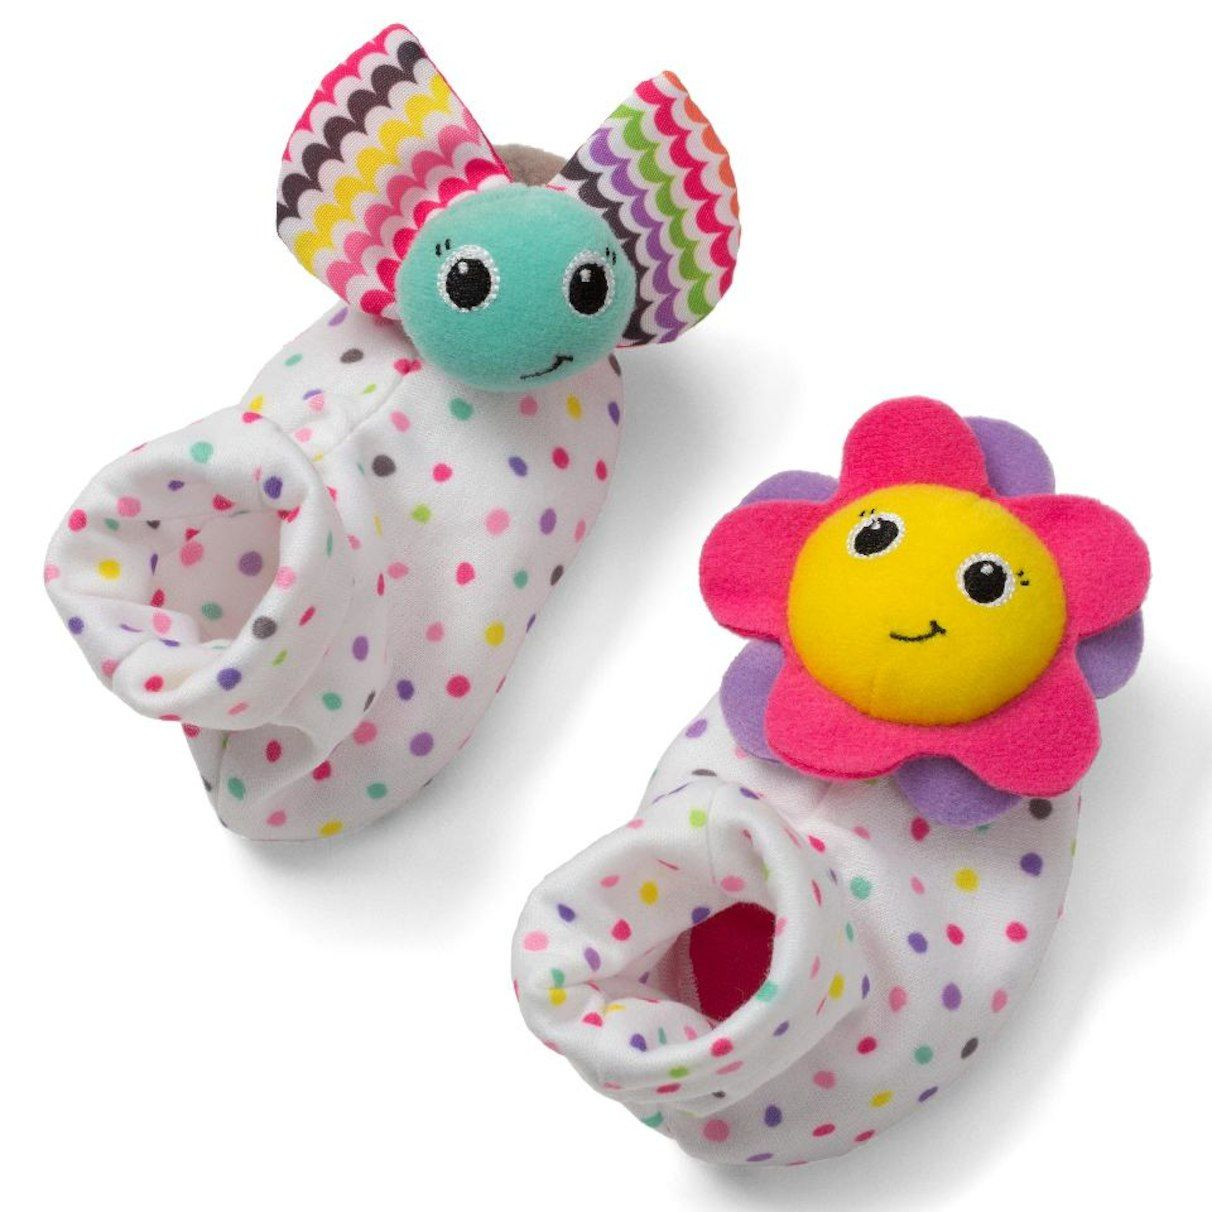 Infantino Sparkle Foot Rattles Rattles Rattle Baby Toys